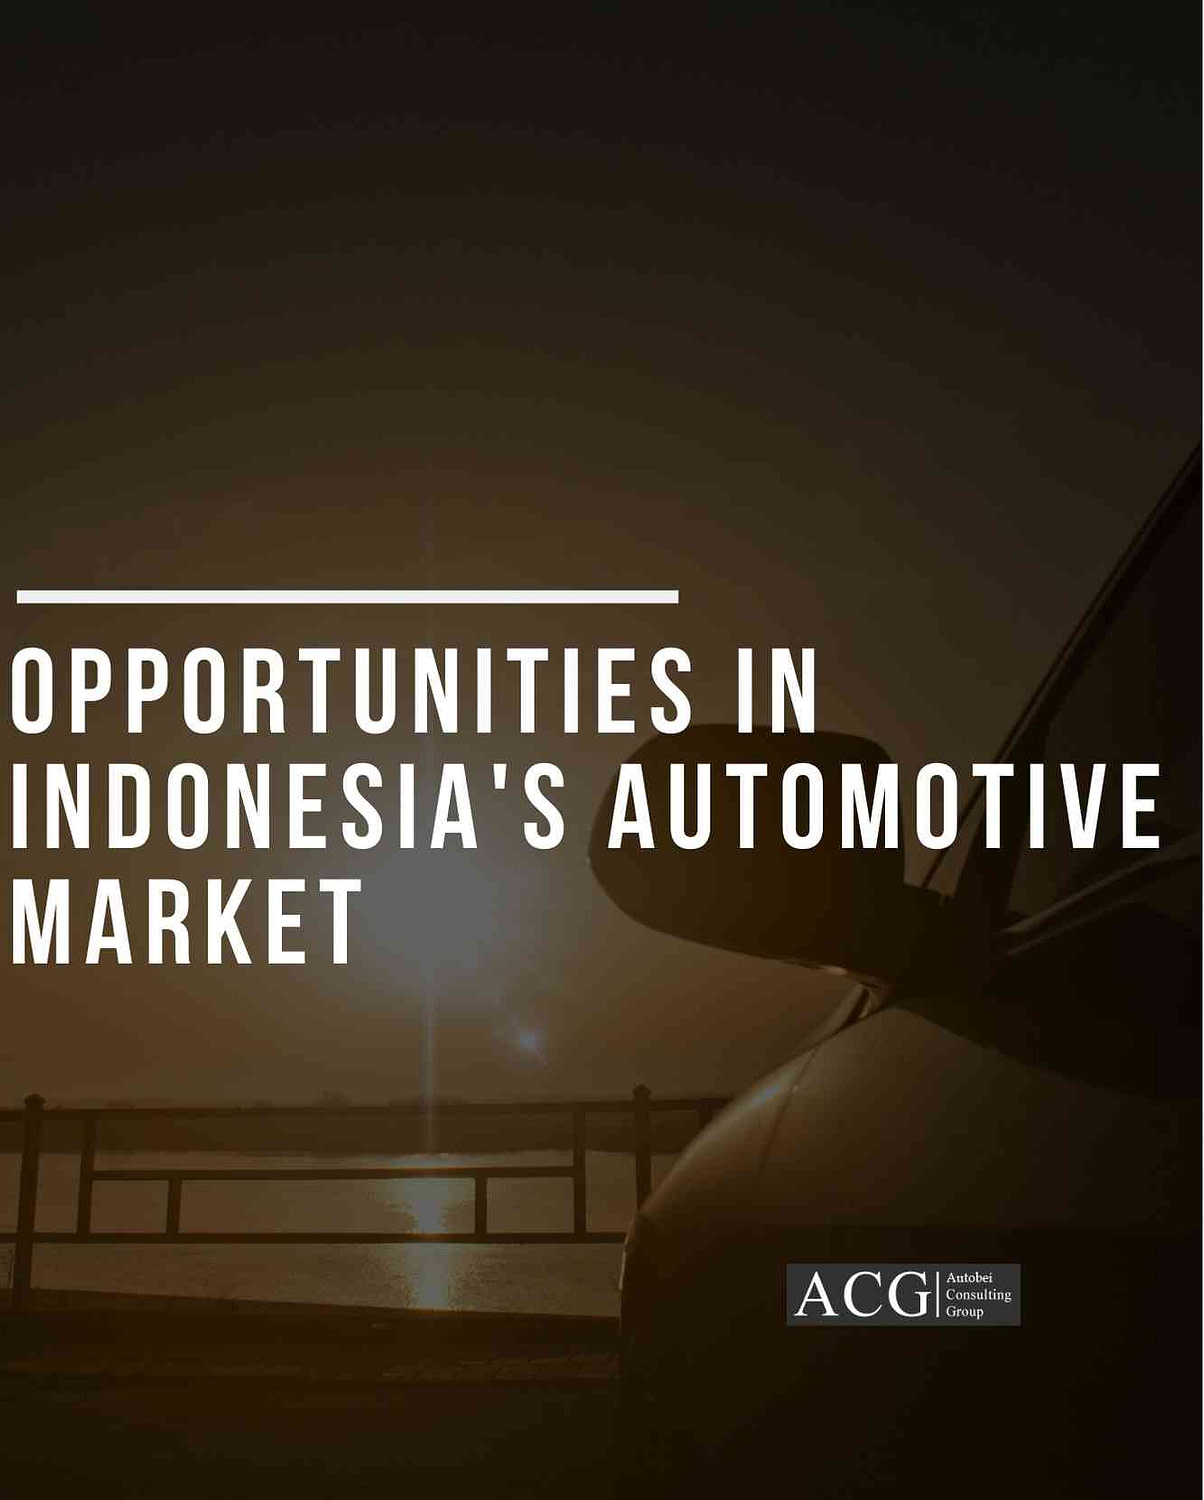 Opportunities in Indonesia's Automotive Market